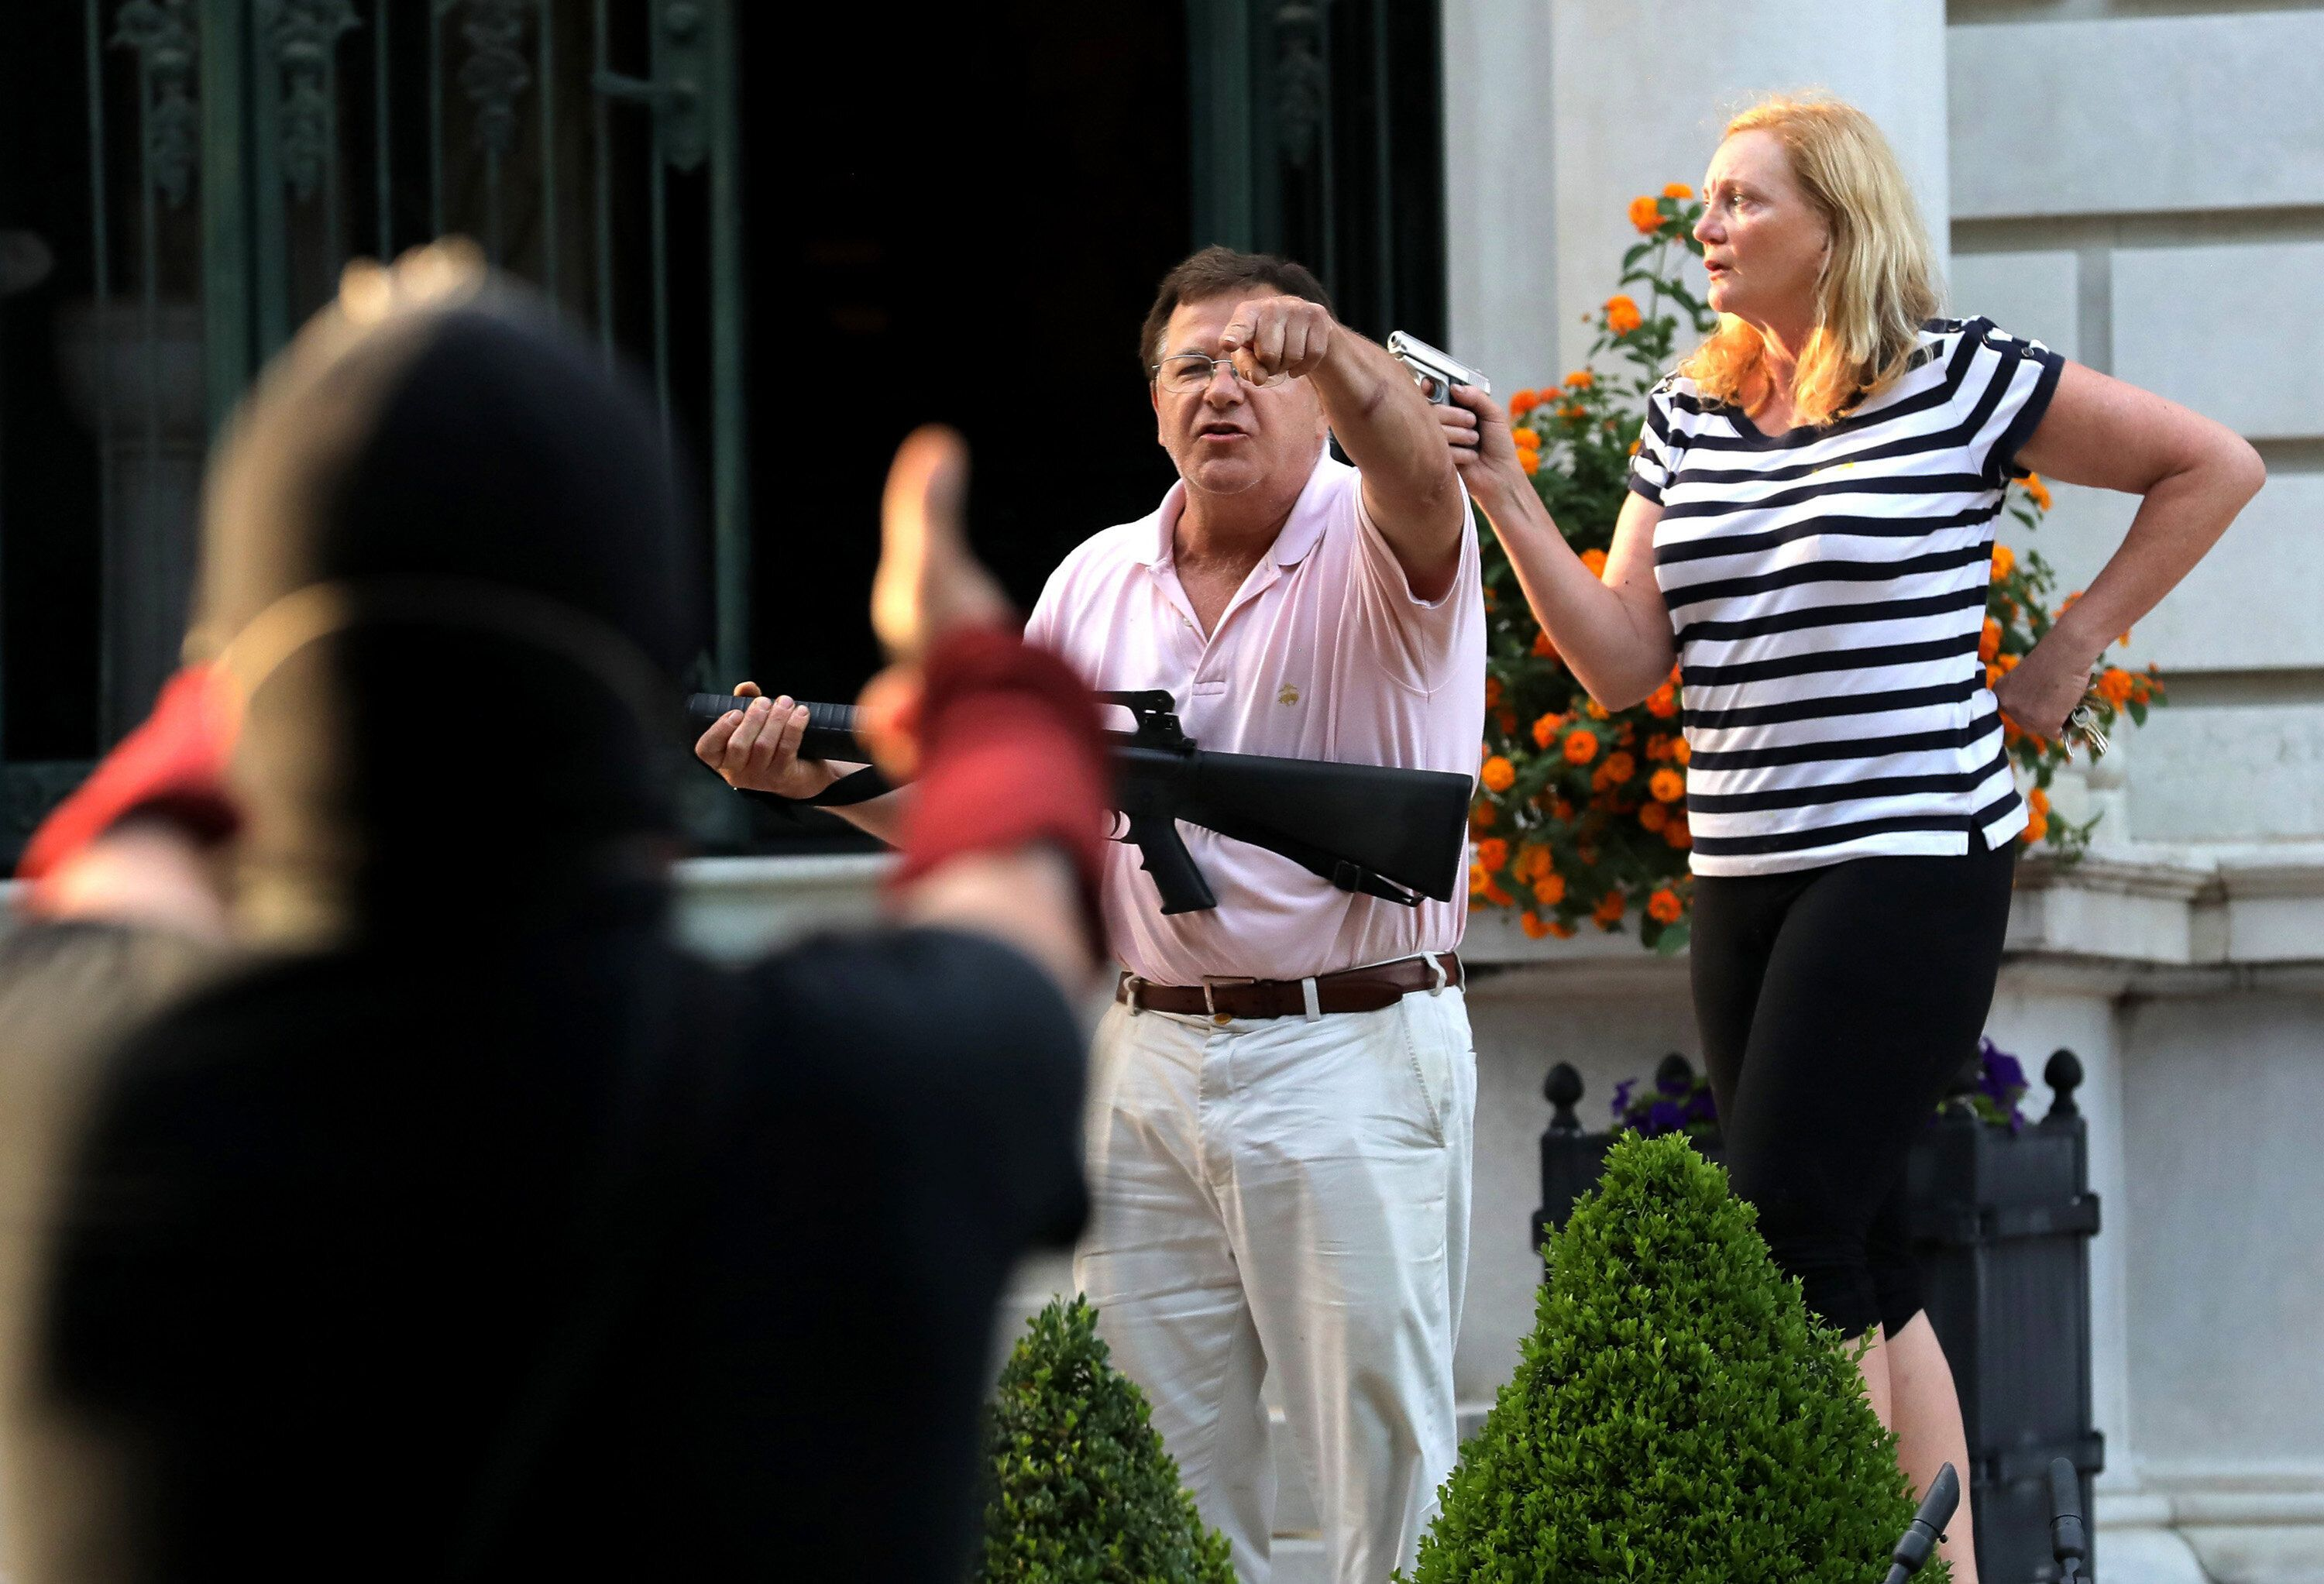 Mark and Patricia McCloskey hold firearms as they stand in front of their house along Portland Place, confronting protesters